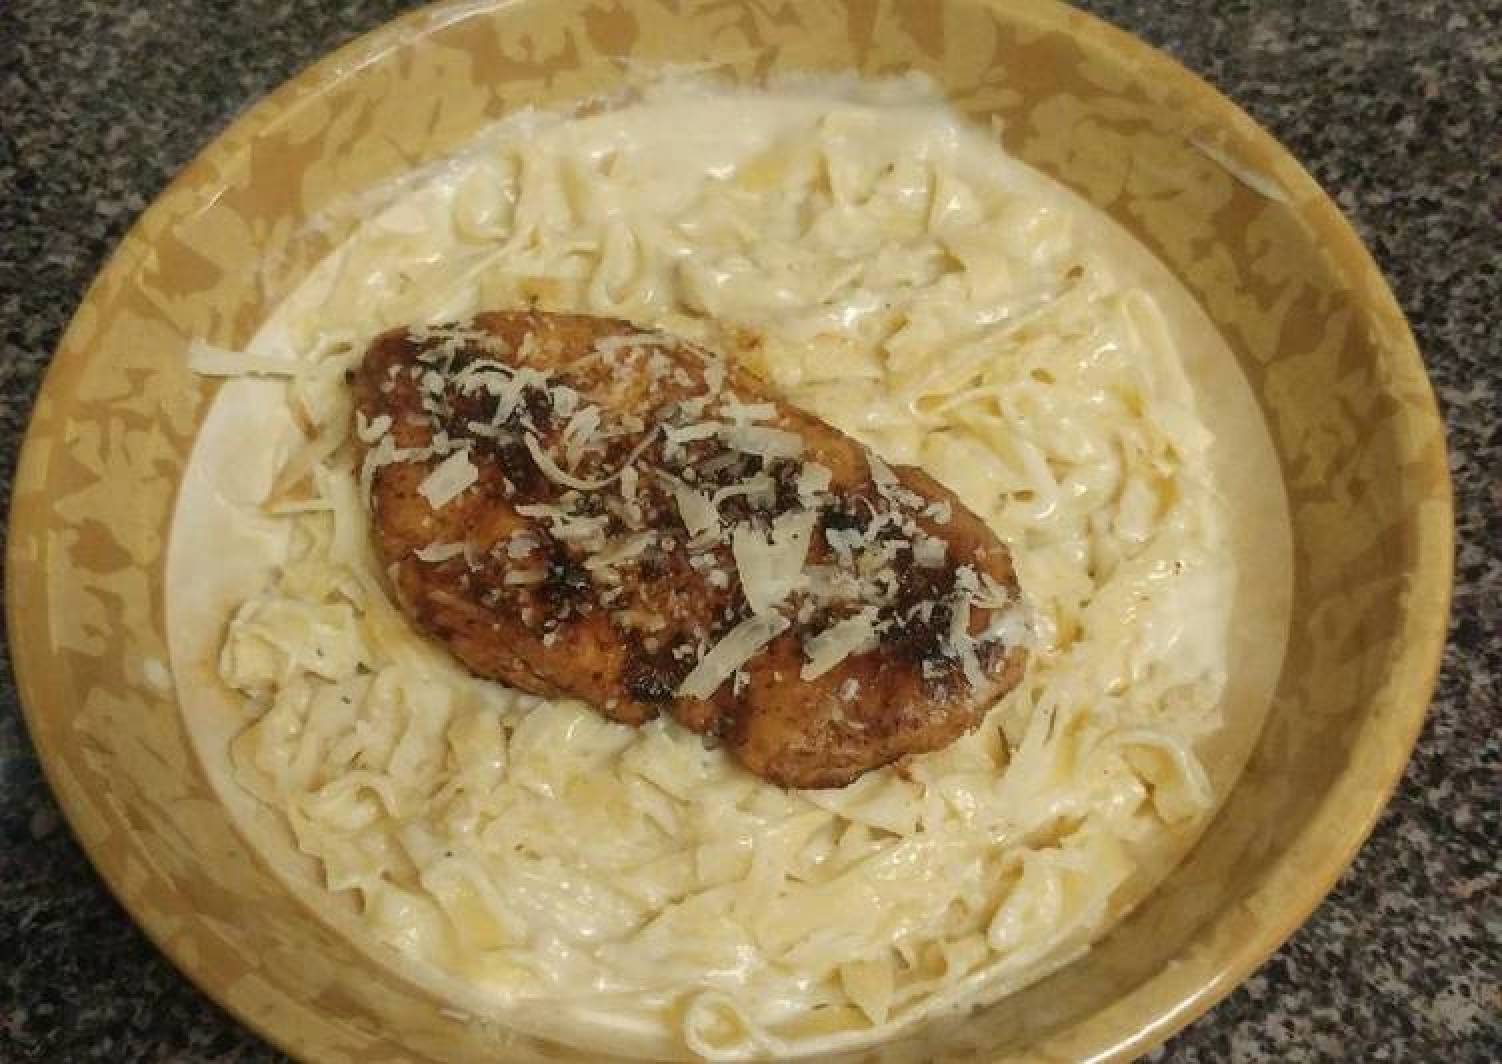 Blackened Chicken Fettuccine Alfredo